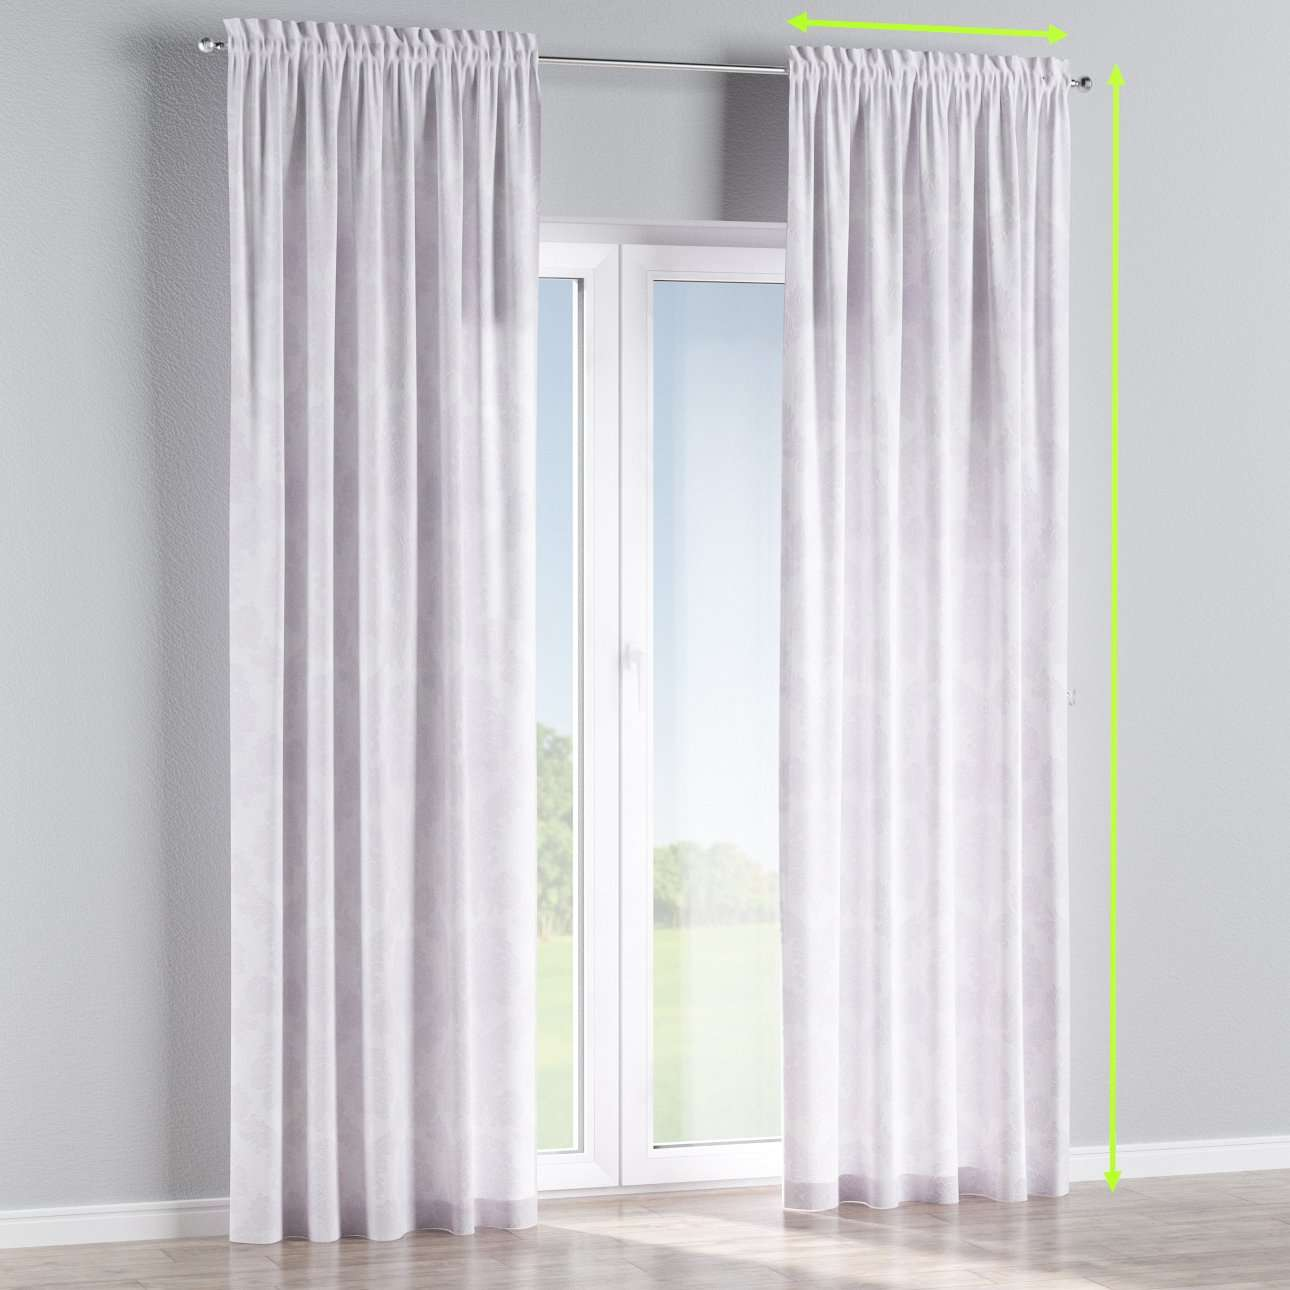 Slot and frill lined curtains in collection Damasco, fabric: 613-00